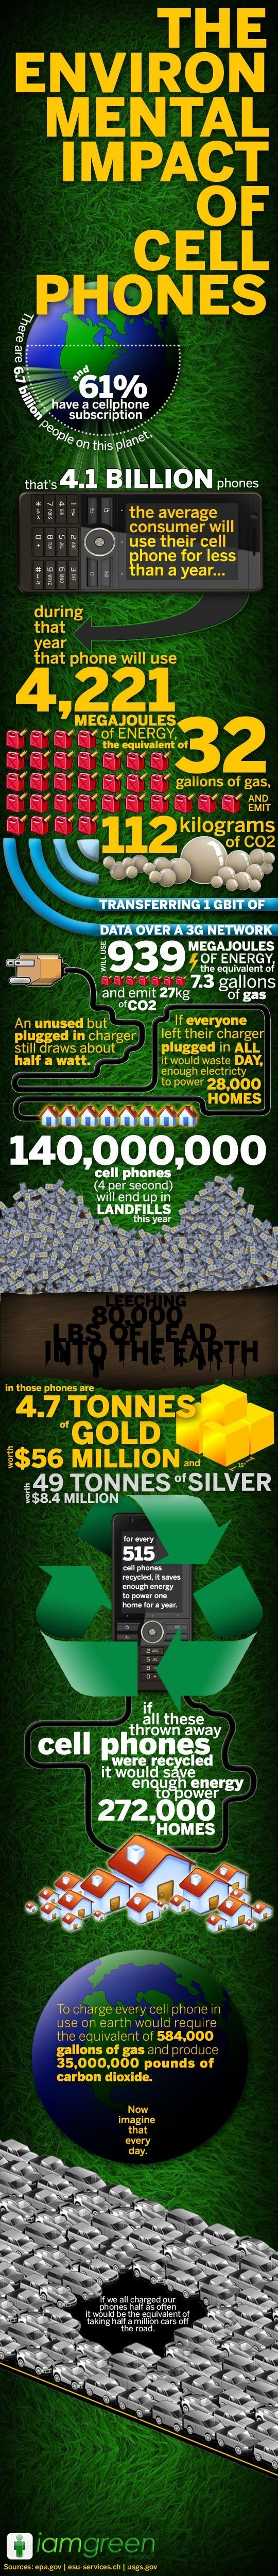 The Environmental Impact Hidden in Your Smartphone